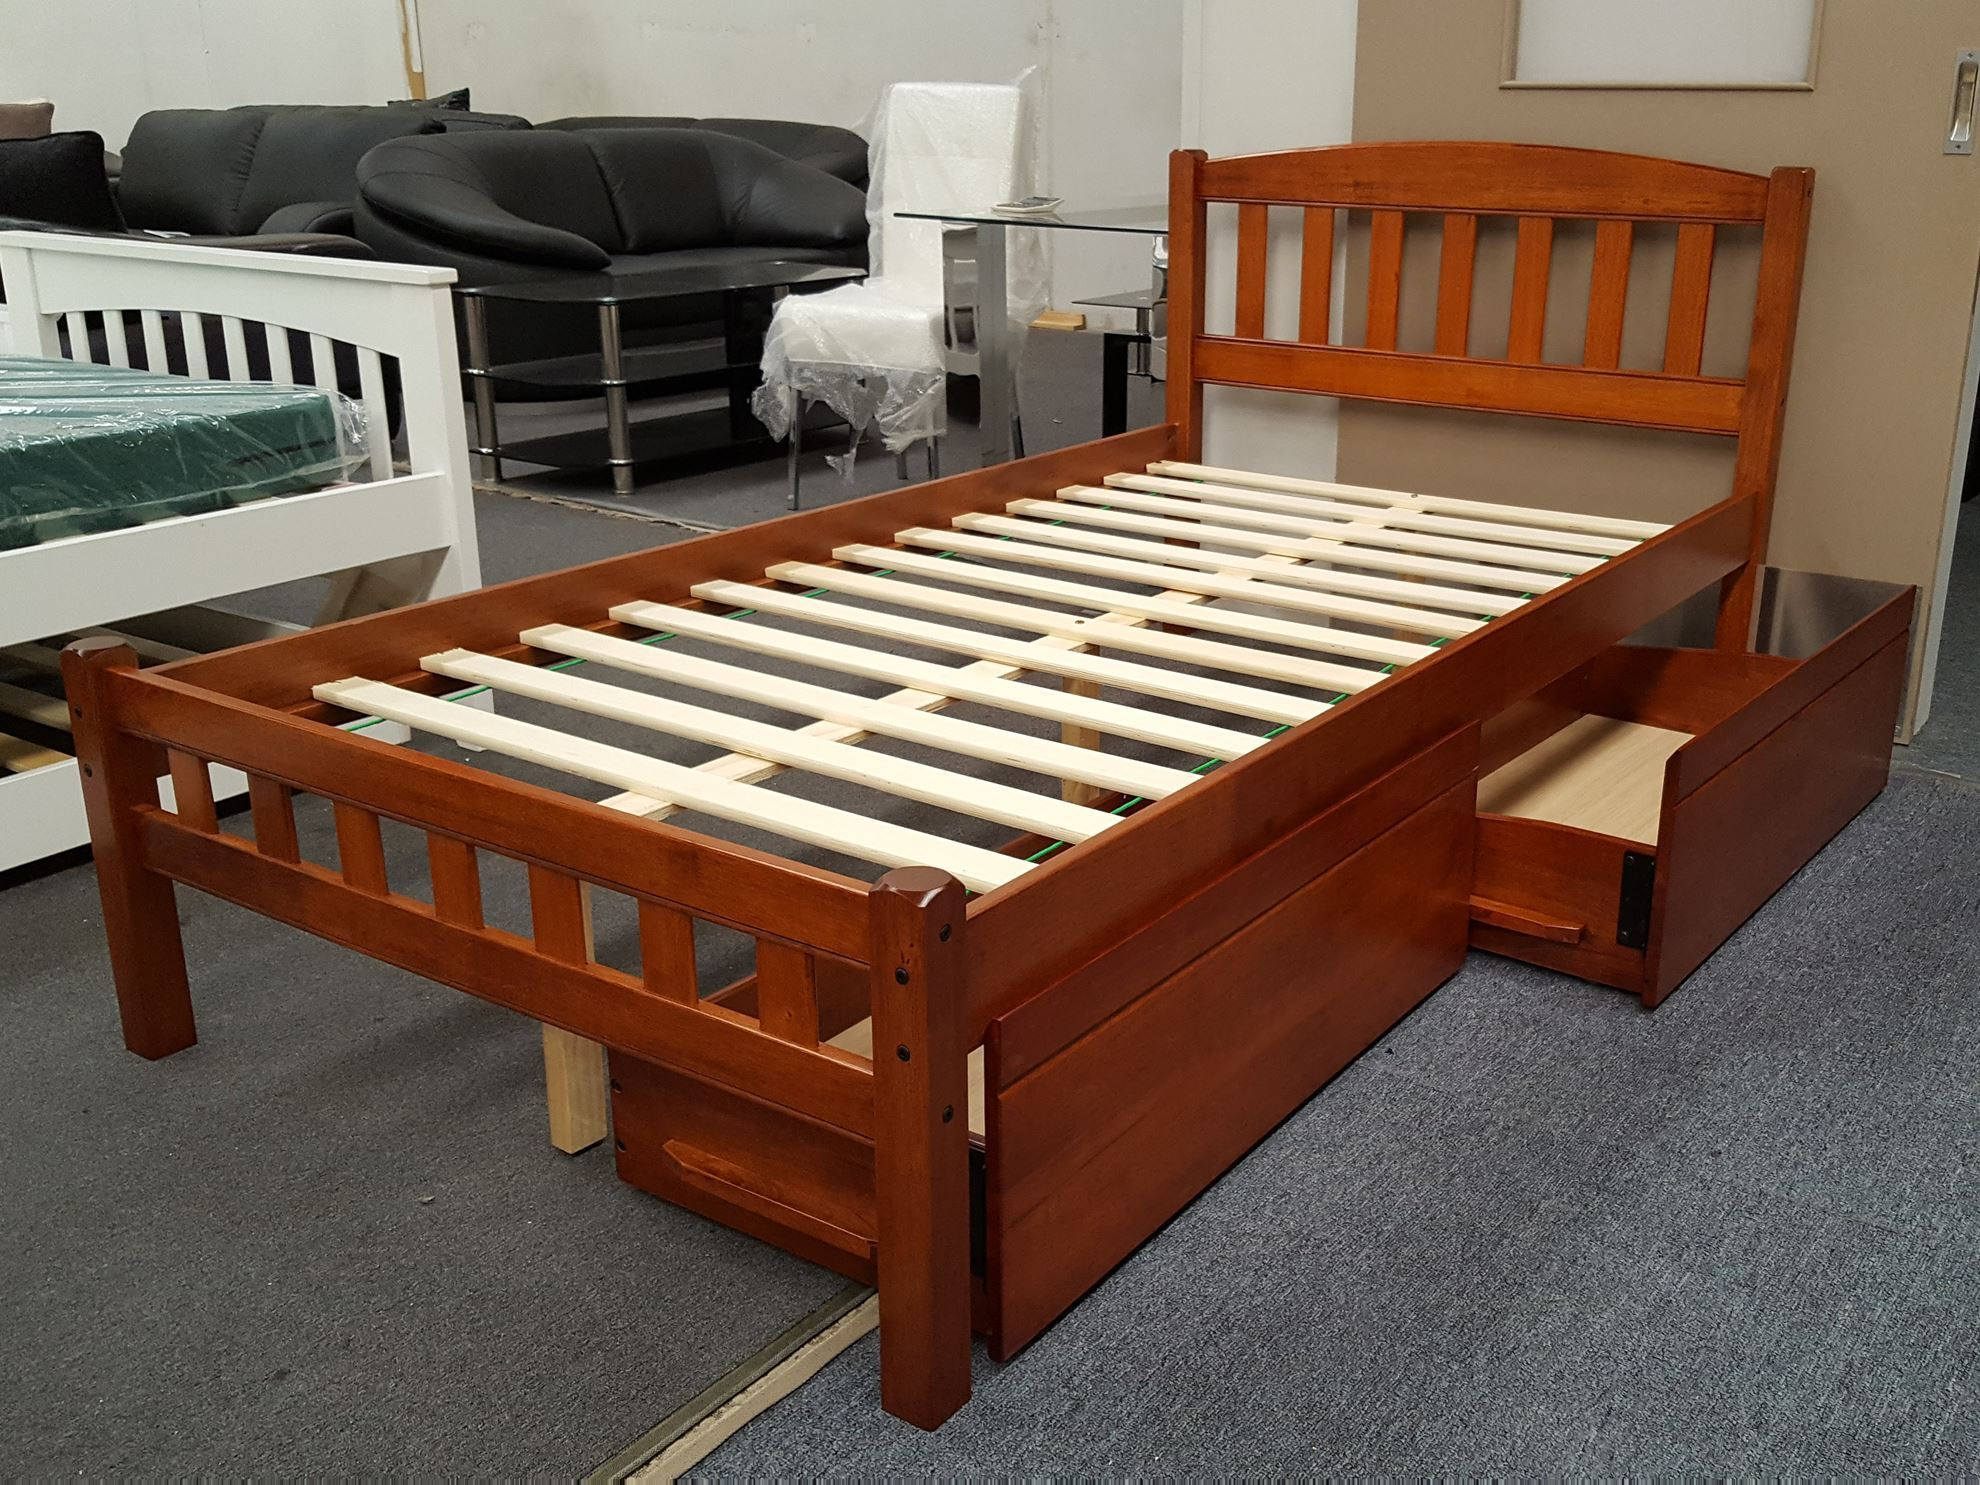 Furniture place zara king single bed in antique oak with for Single bed with drawers and mattress